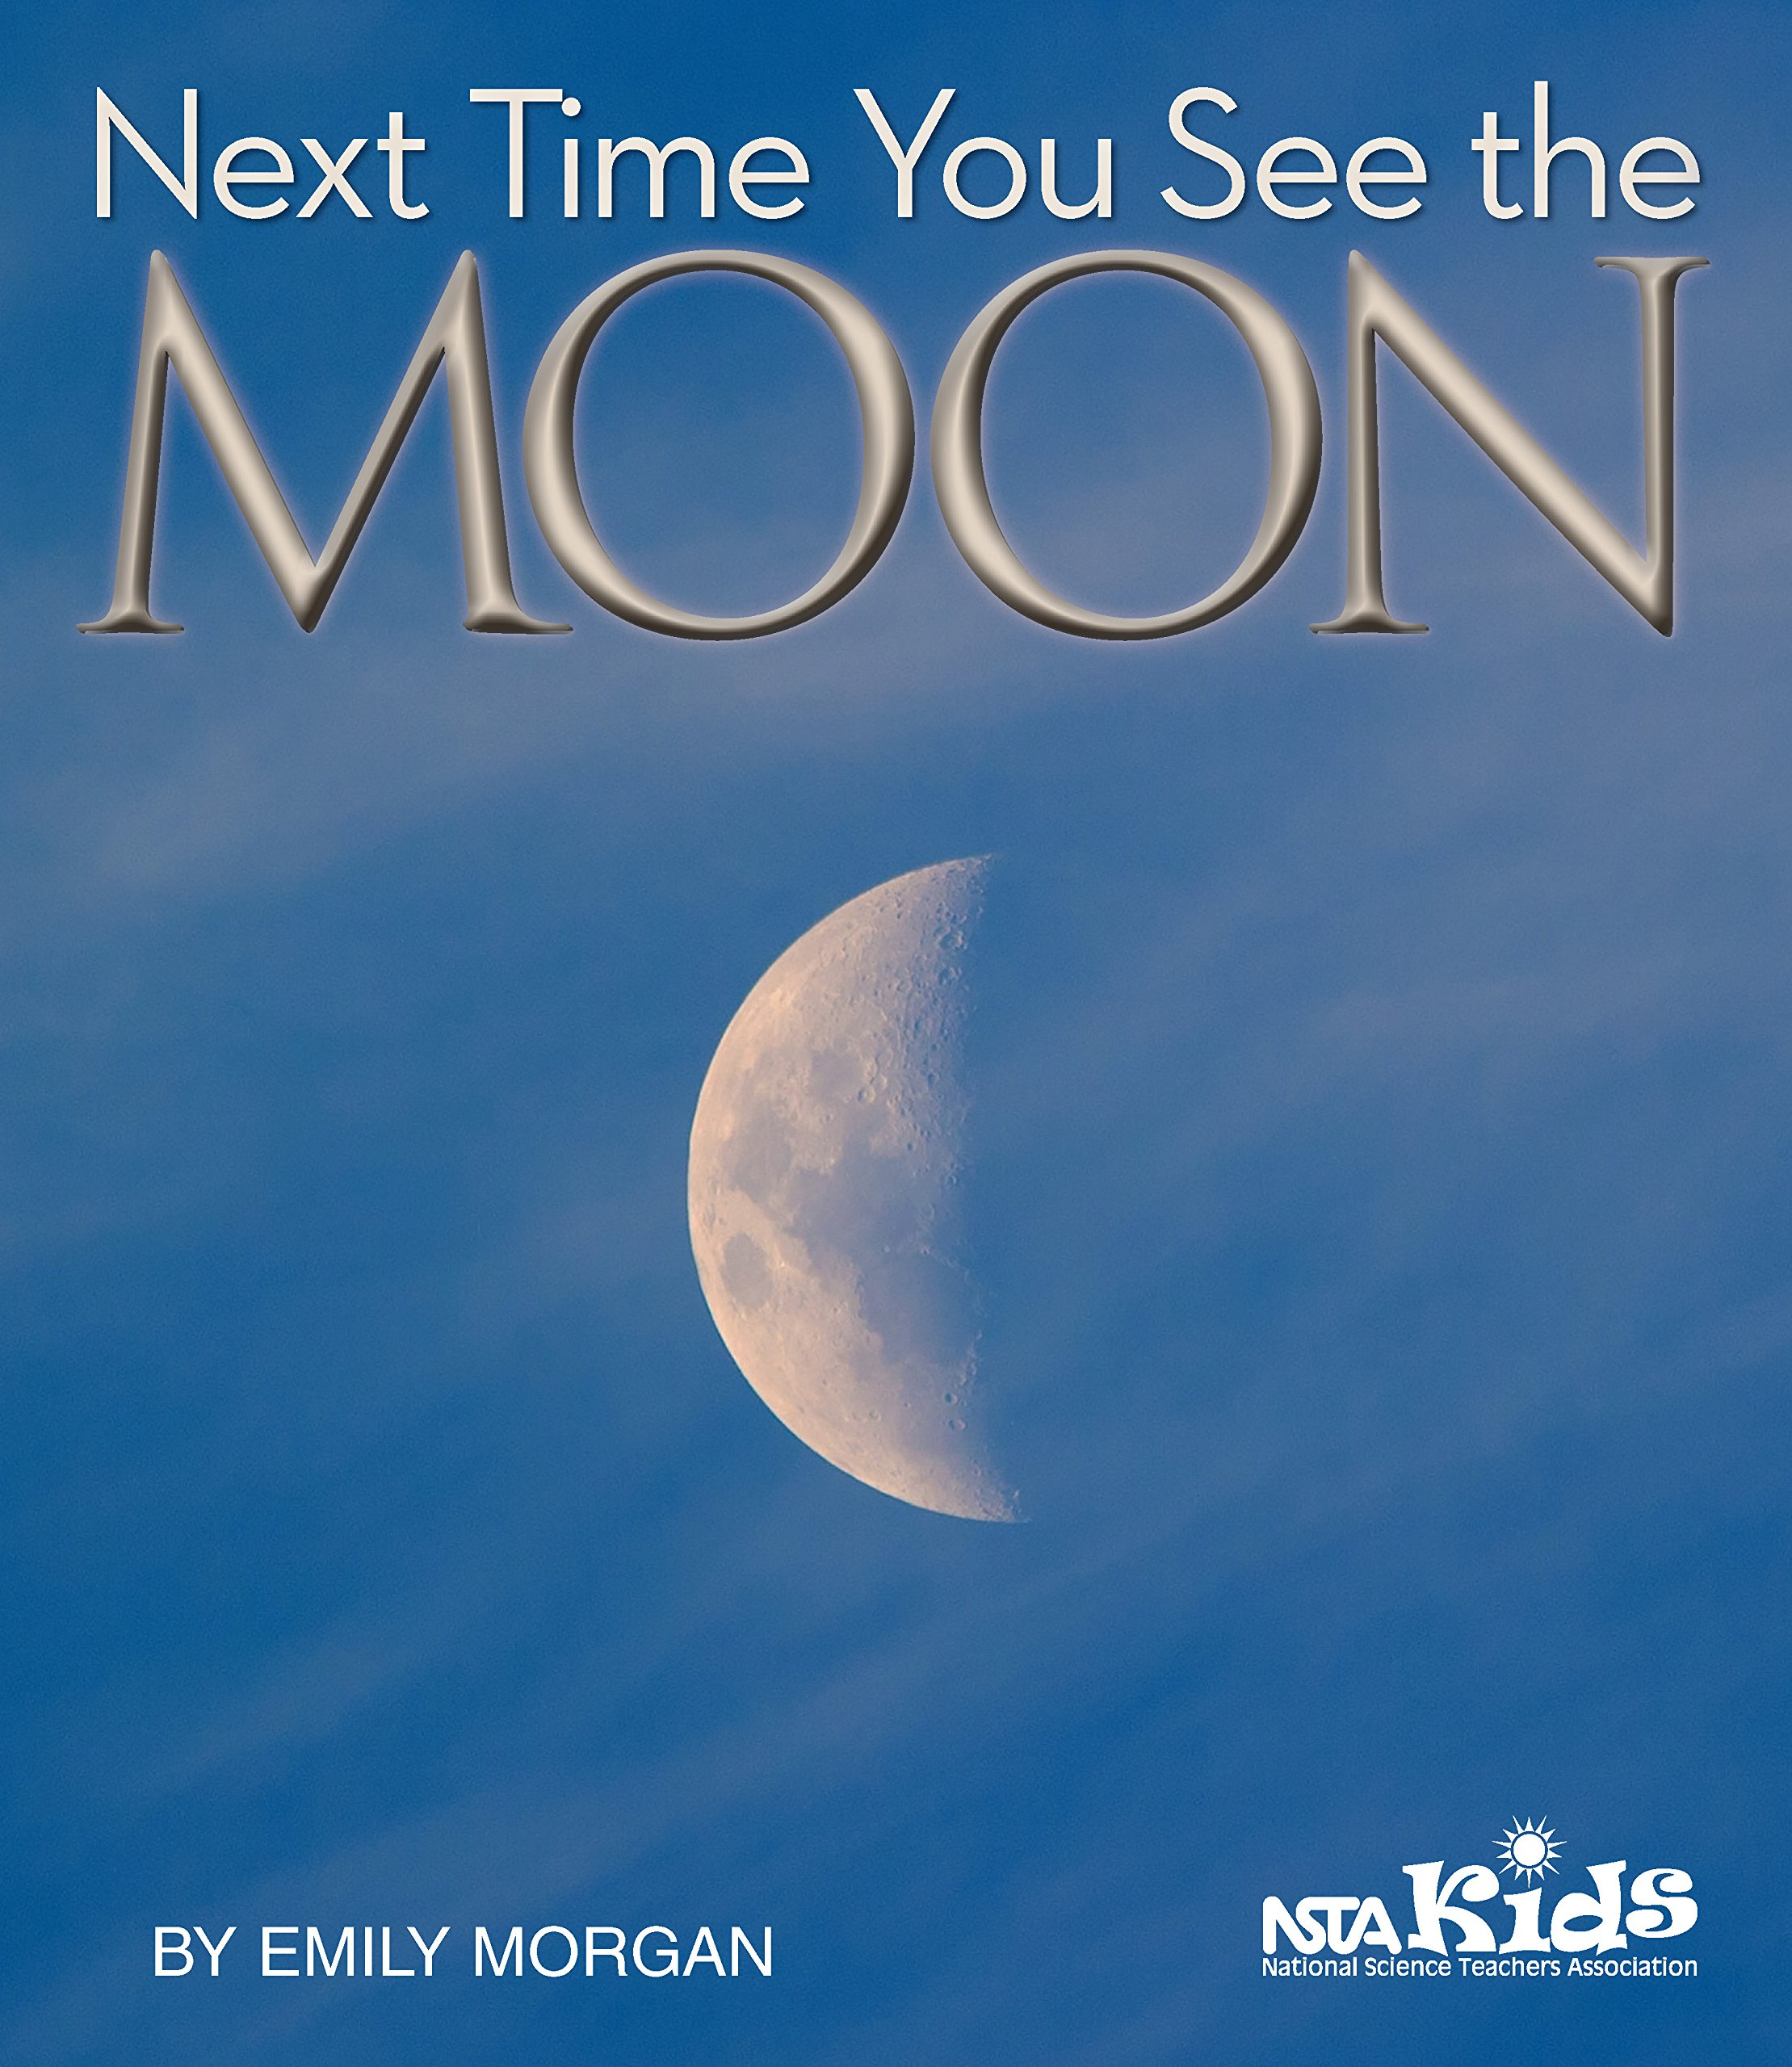 Next Time You See the Moon: Emily Morgan: 9781938946493: Amazon.com ...